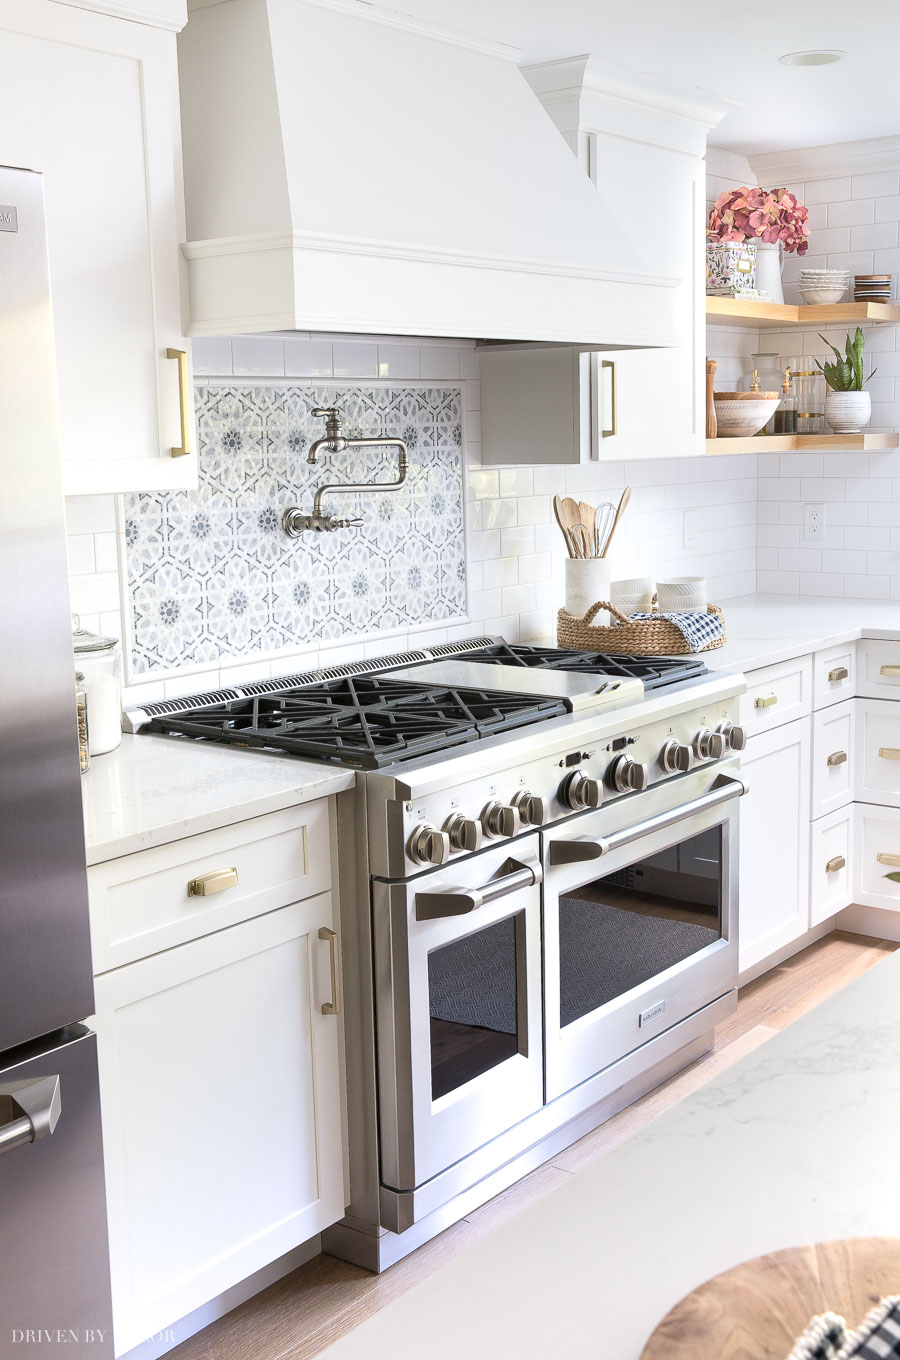 Having a range with two ovens (one full size and one smaller) is one of my favorite features of our new kitchen!